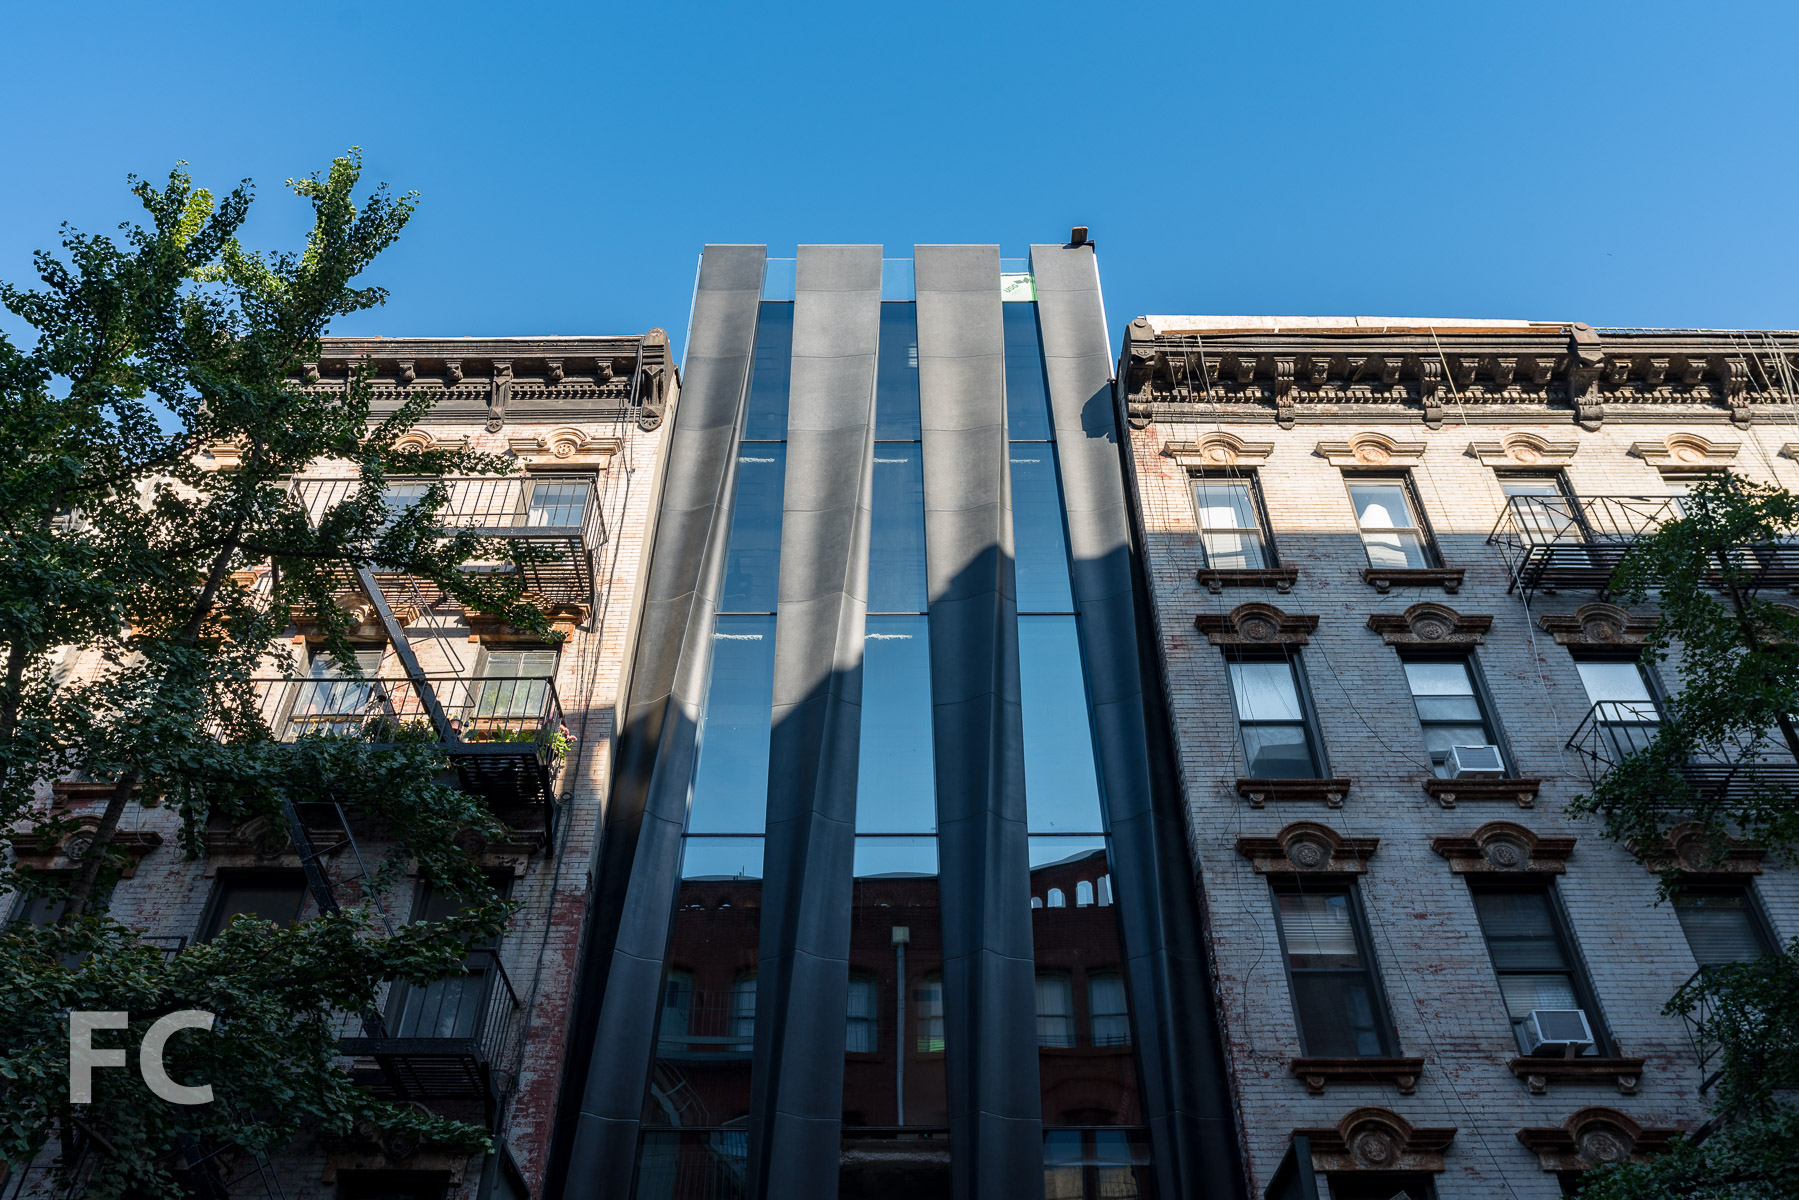 Looking up at the east facade on Mott Street.